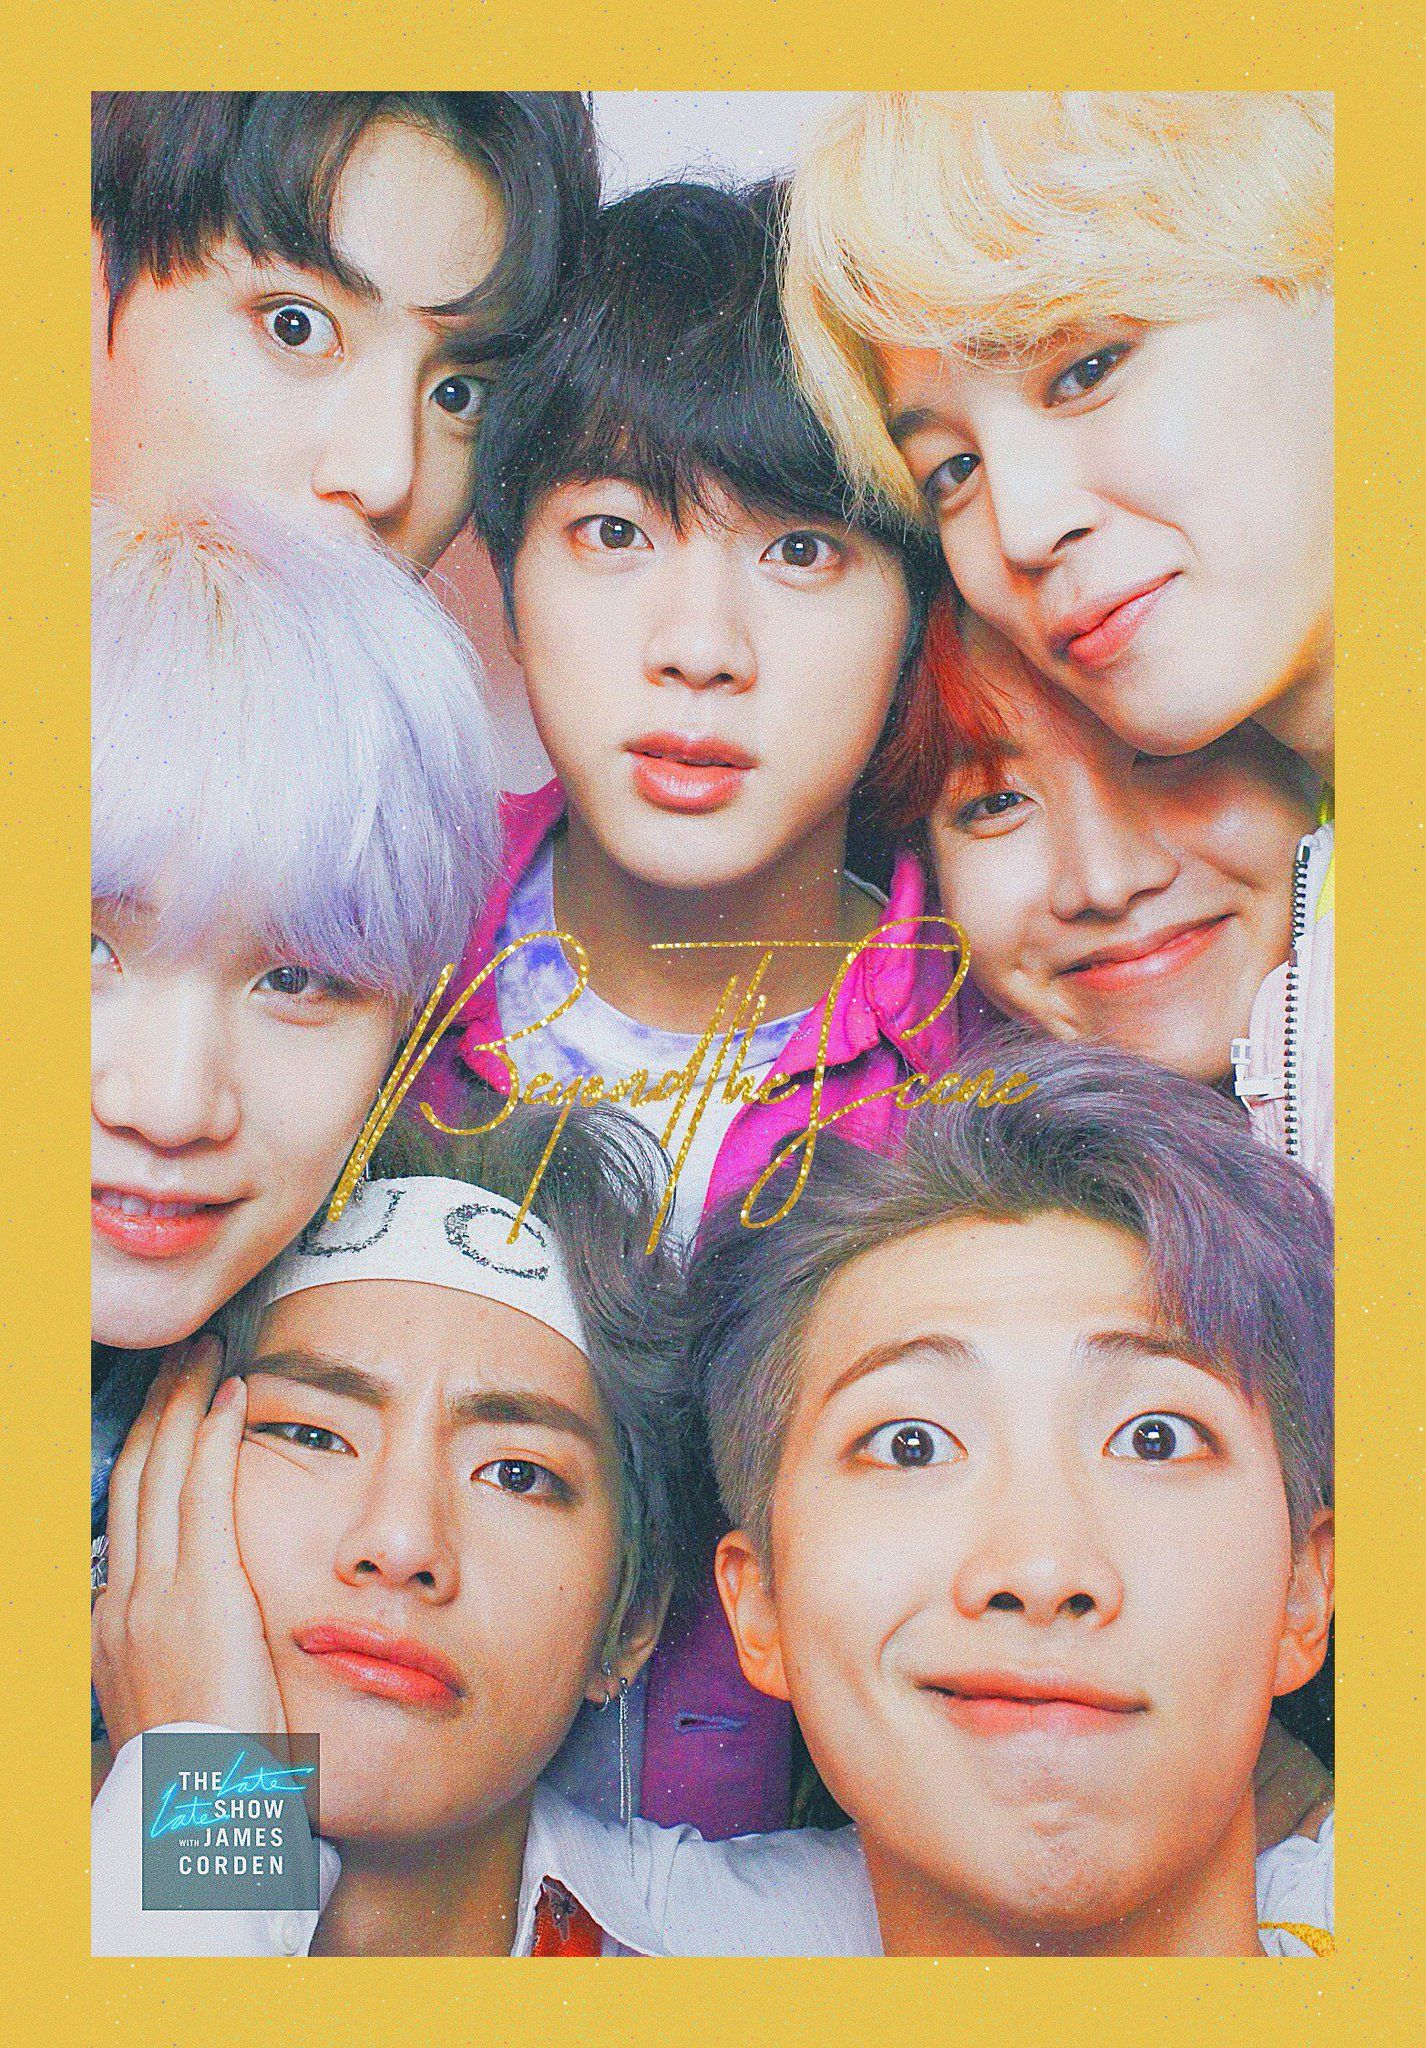 Twitter (With images) | Bts wallpaper, Bts aesthetic ...